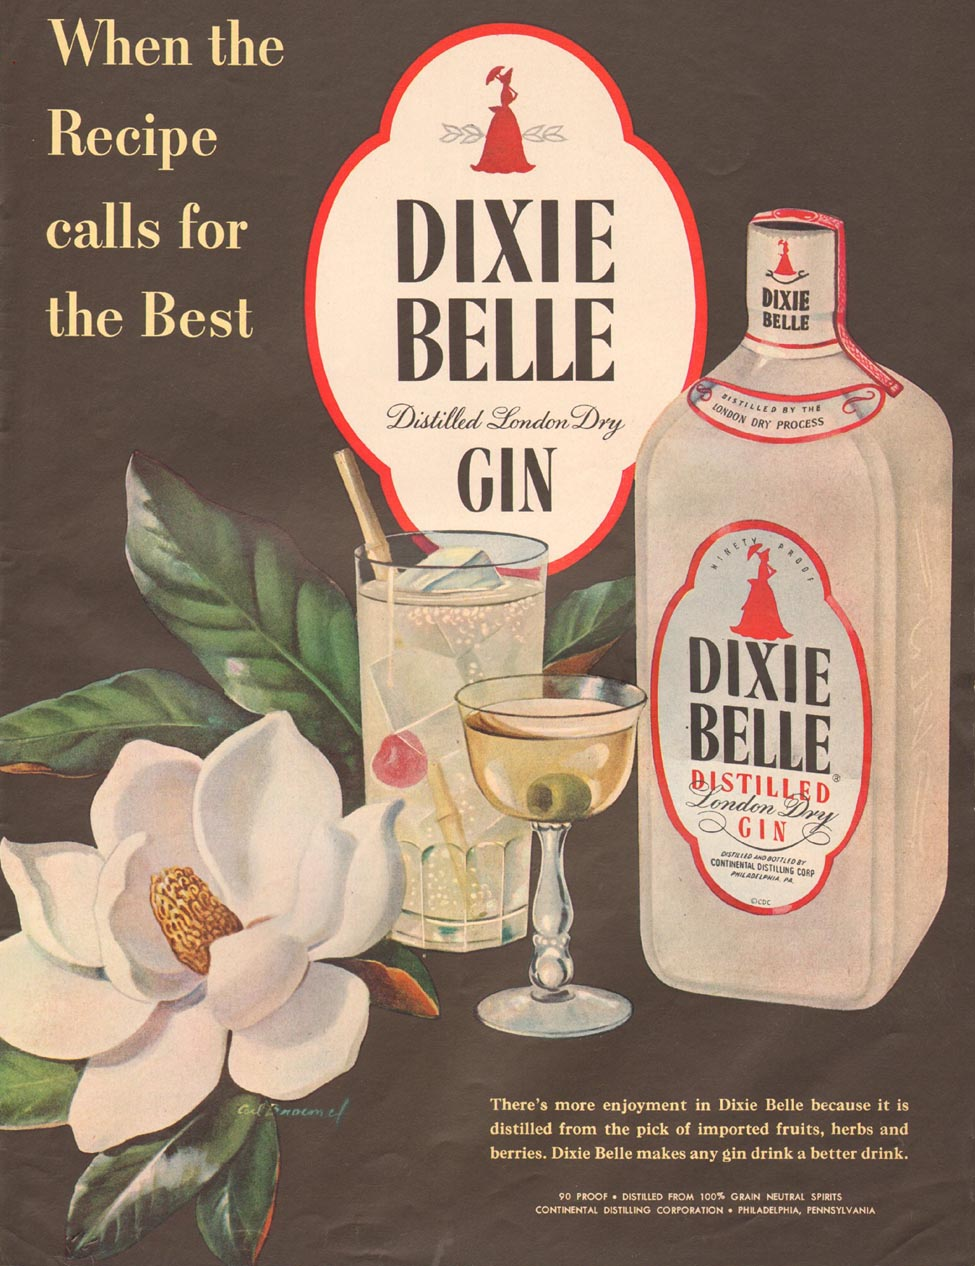 DIXIE BELLE DISTILLED GIN LIFE 04/30/1951 p. 83